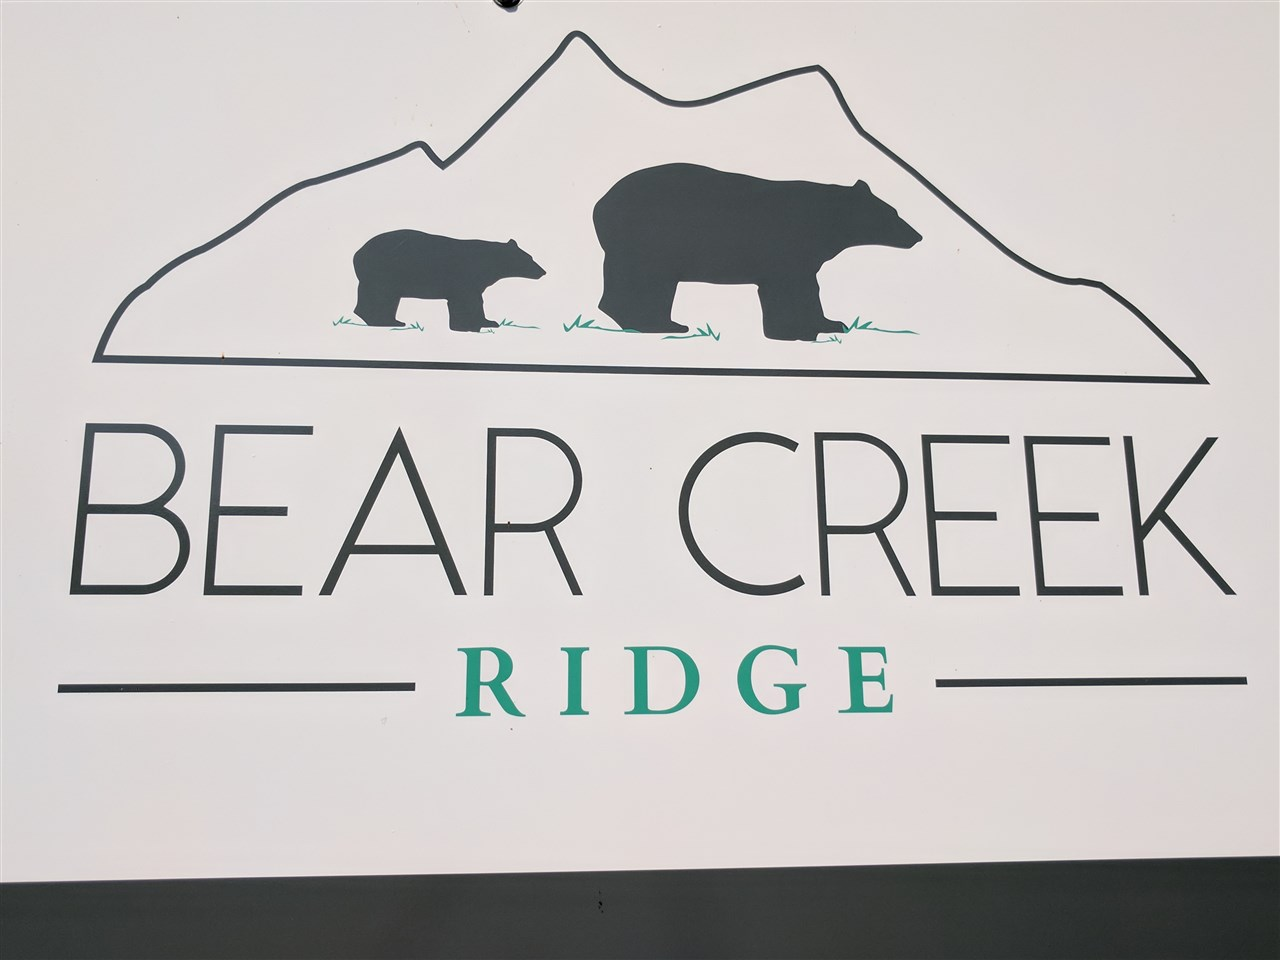 Bear Creek Ridge is a bare land strata of building lots that are now available on lower Promontory. Nice unobstructed view of Sardis and Vedder Crossing. A nice, quiet area to build your dream home. Roads and services are being installed and are expected to be completed this fall. Bring your builder or have the Seller build to suit. Call for details.